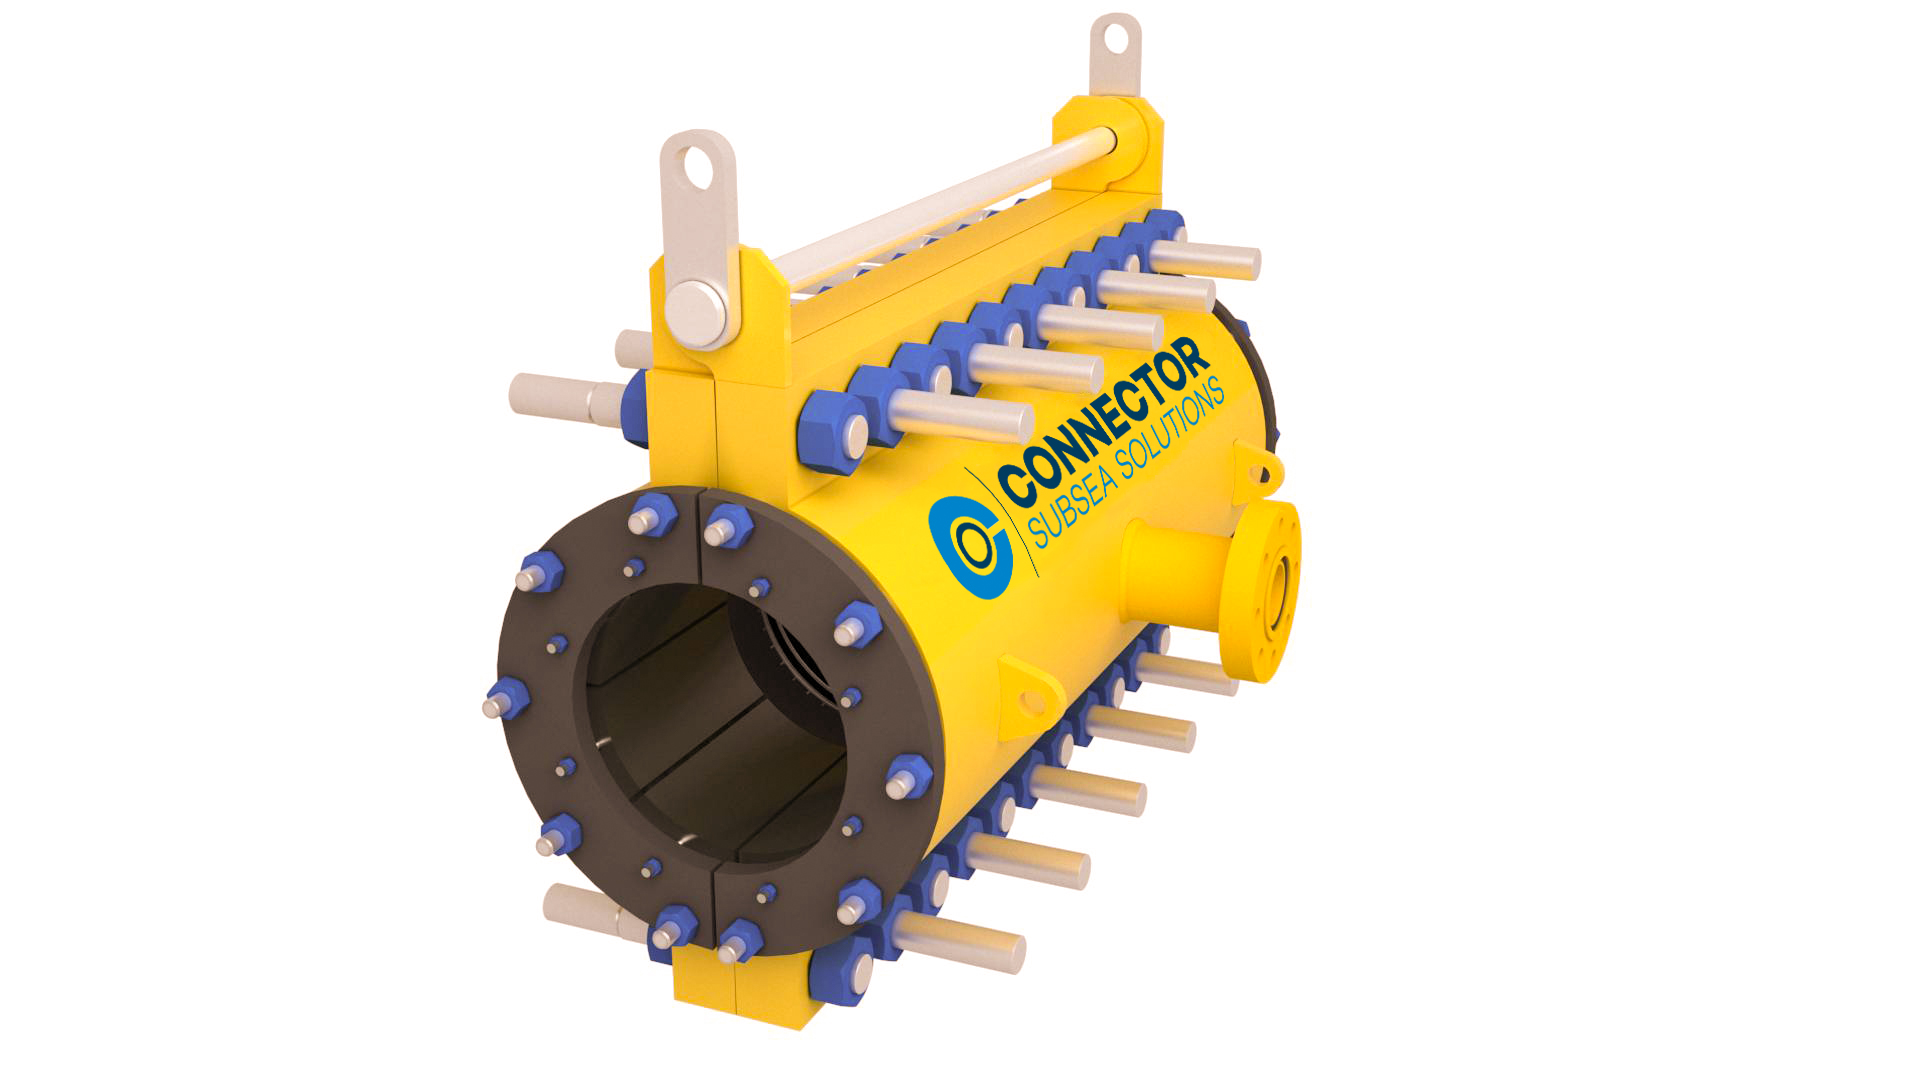 Illustrates the structural element of the subsea clamp for perminent repair